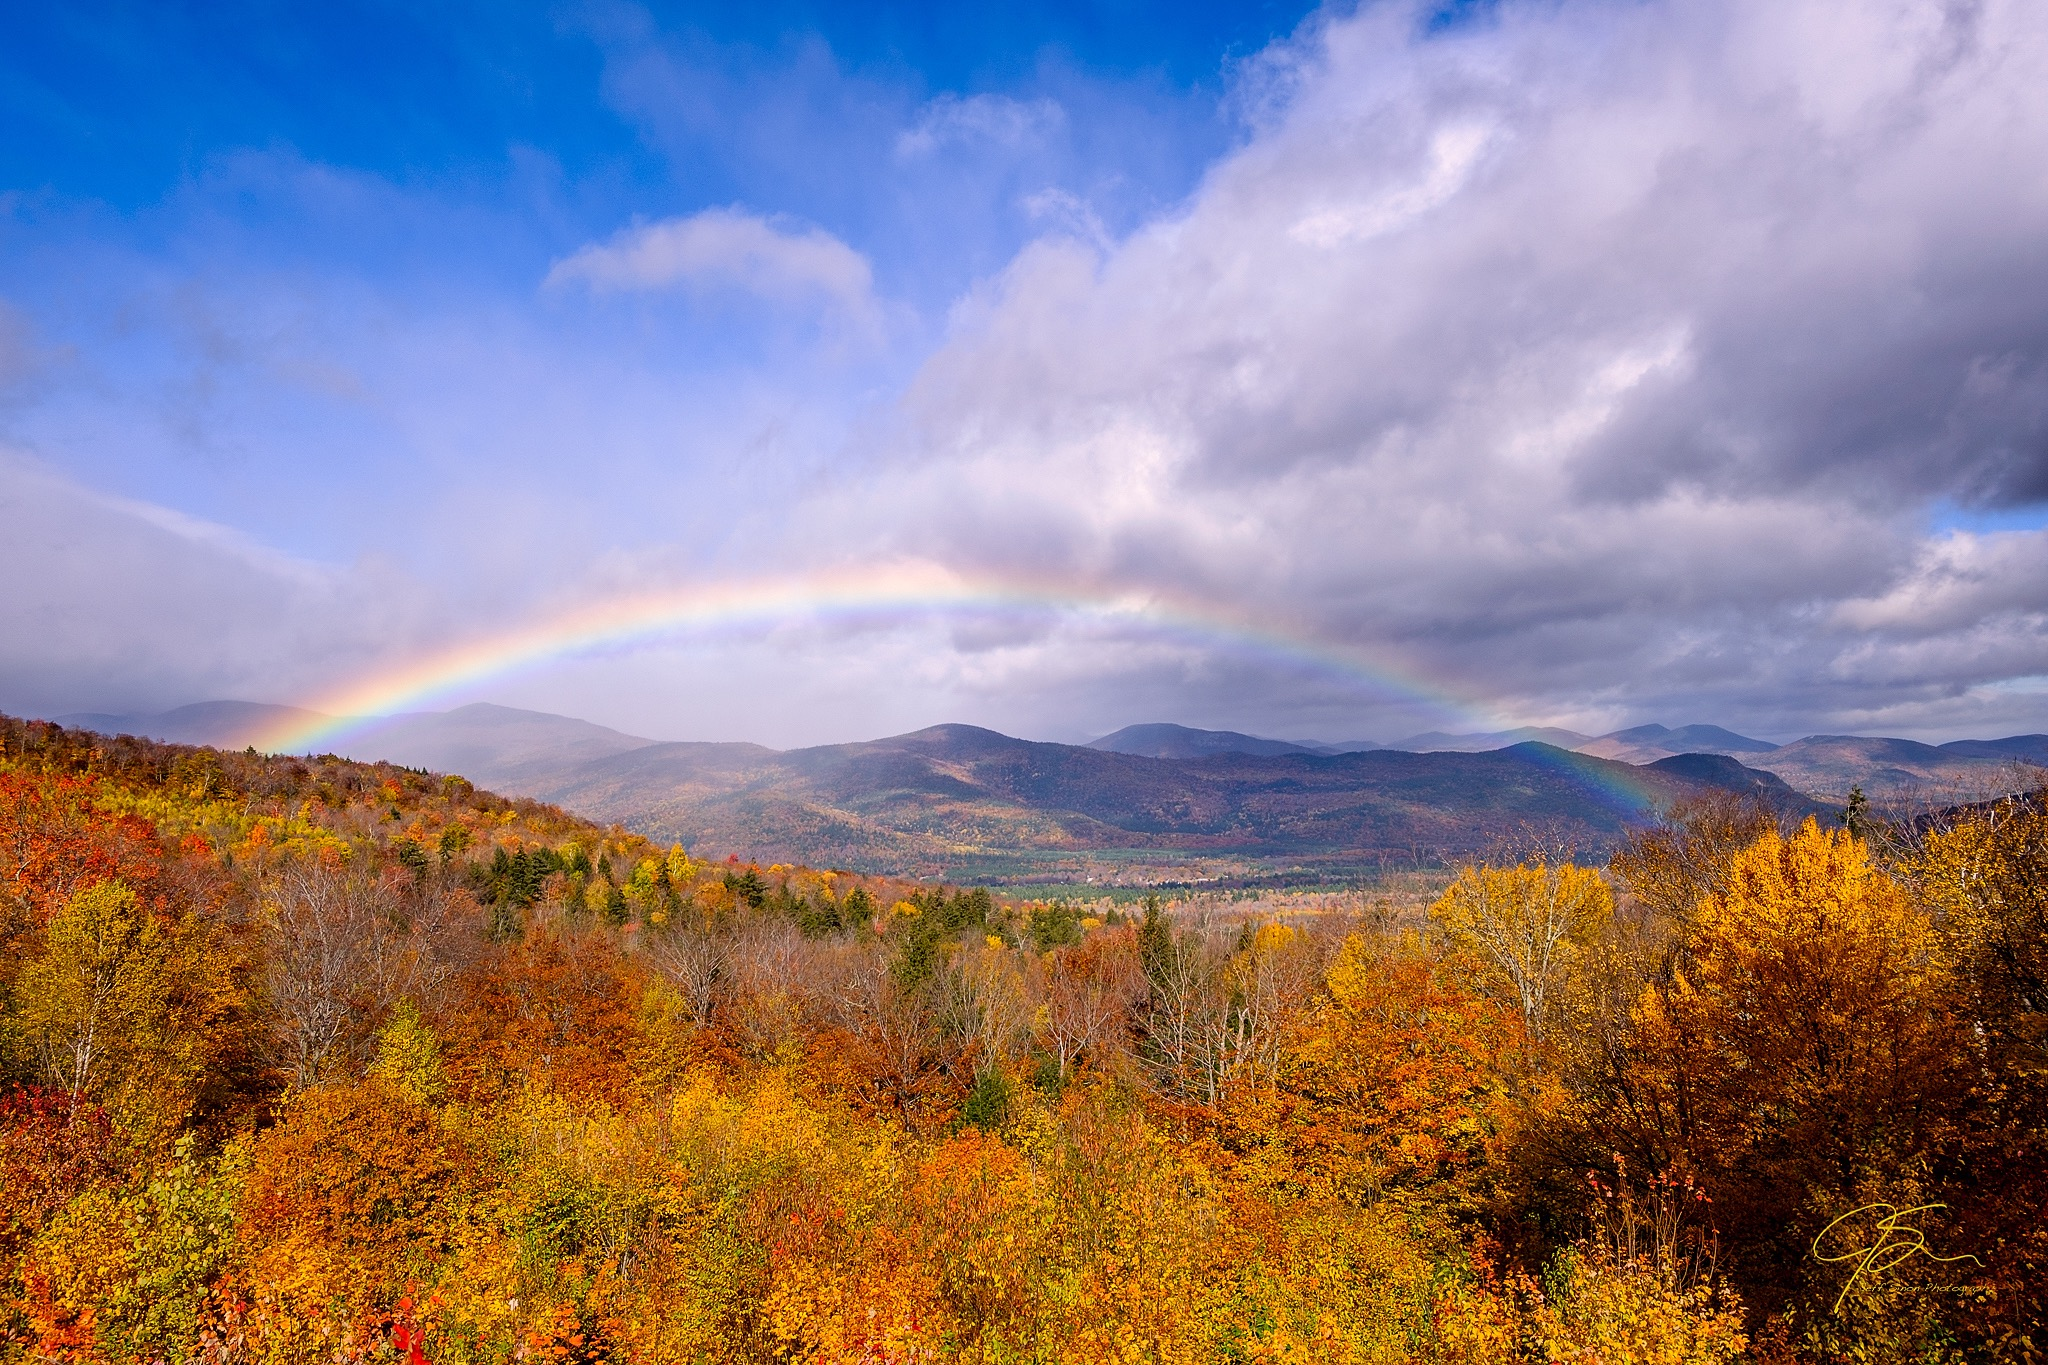 A full rainbow arcs across the sky over the brilliantly colored White Mountains.